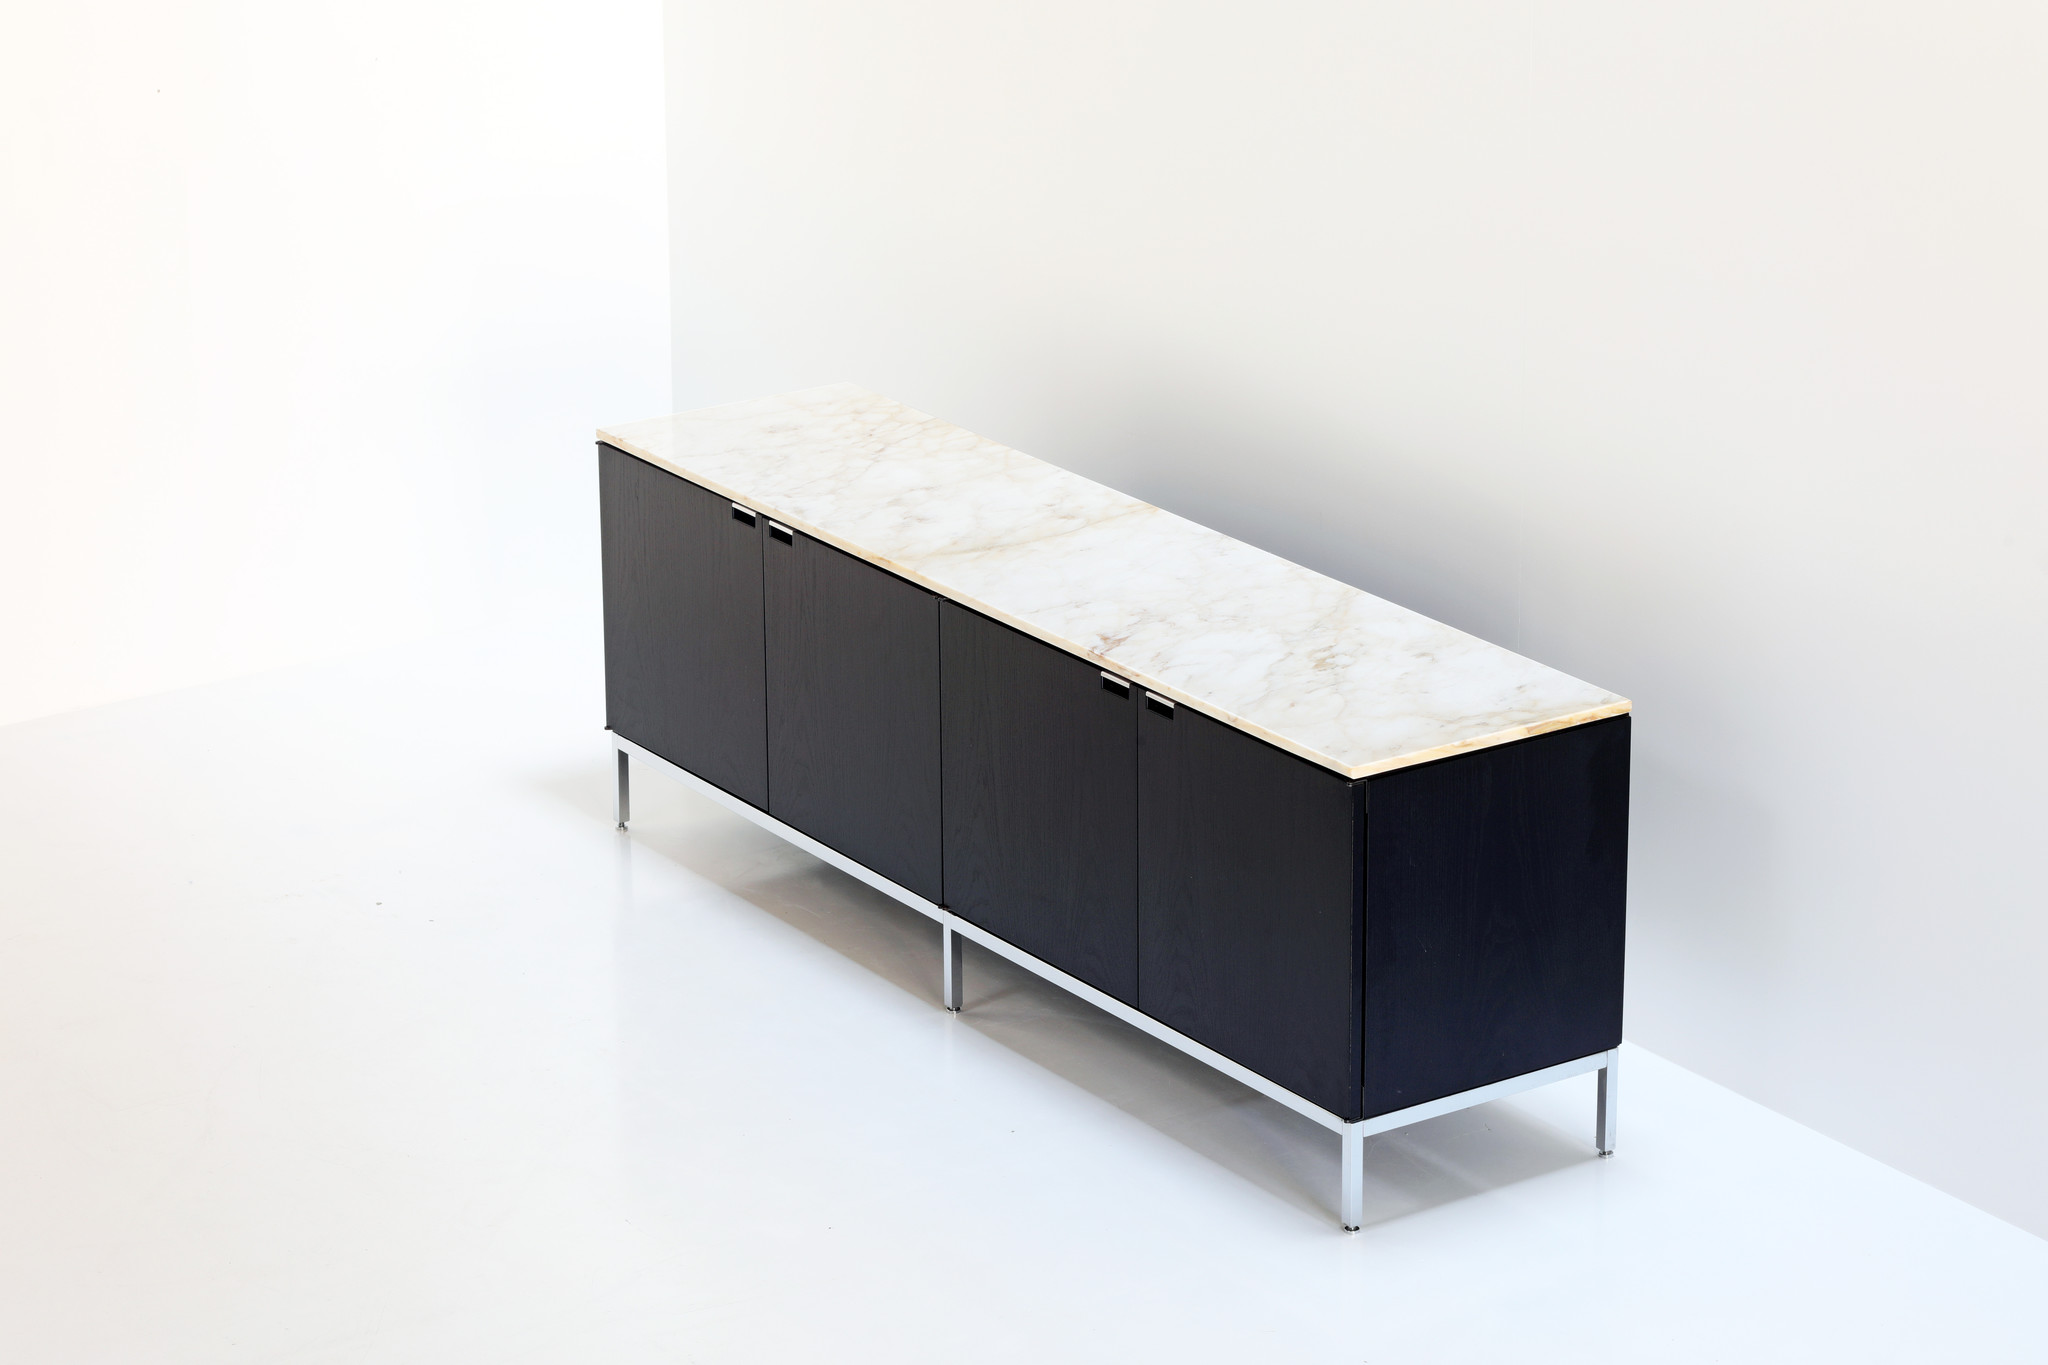 KNOLL CREDENZA DESIGNED BY FLORENCE KNOLL, 1961